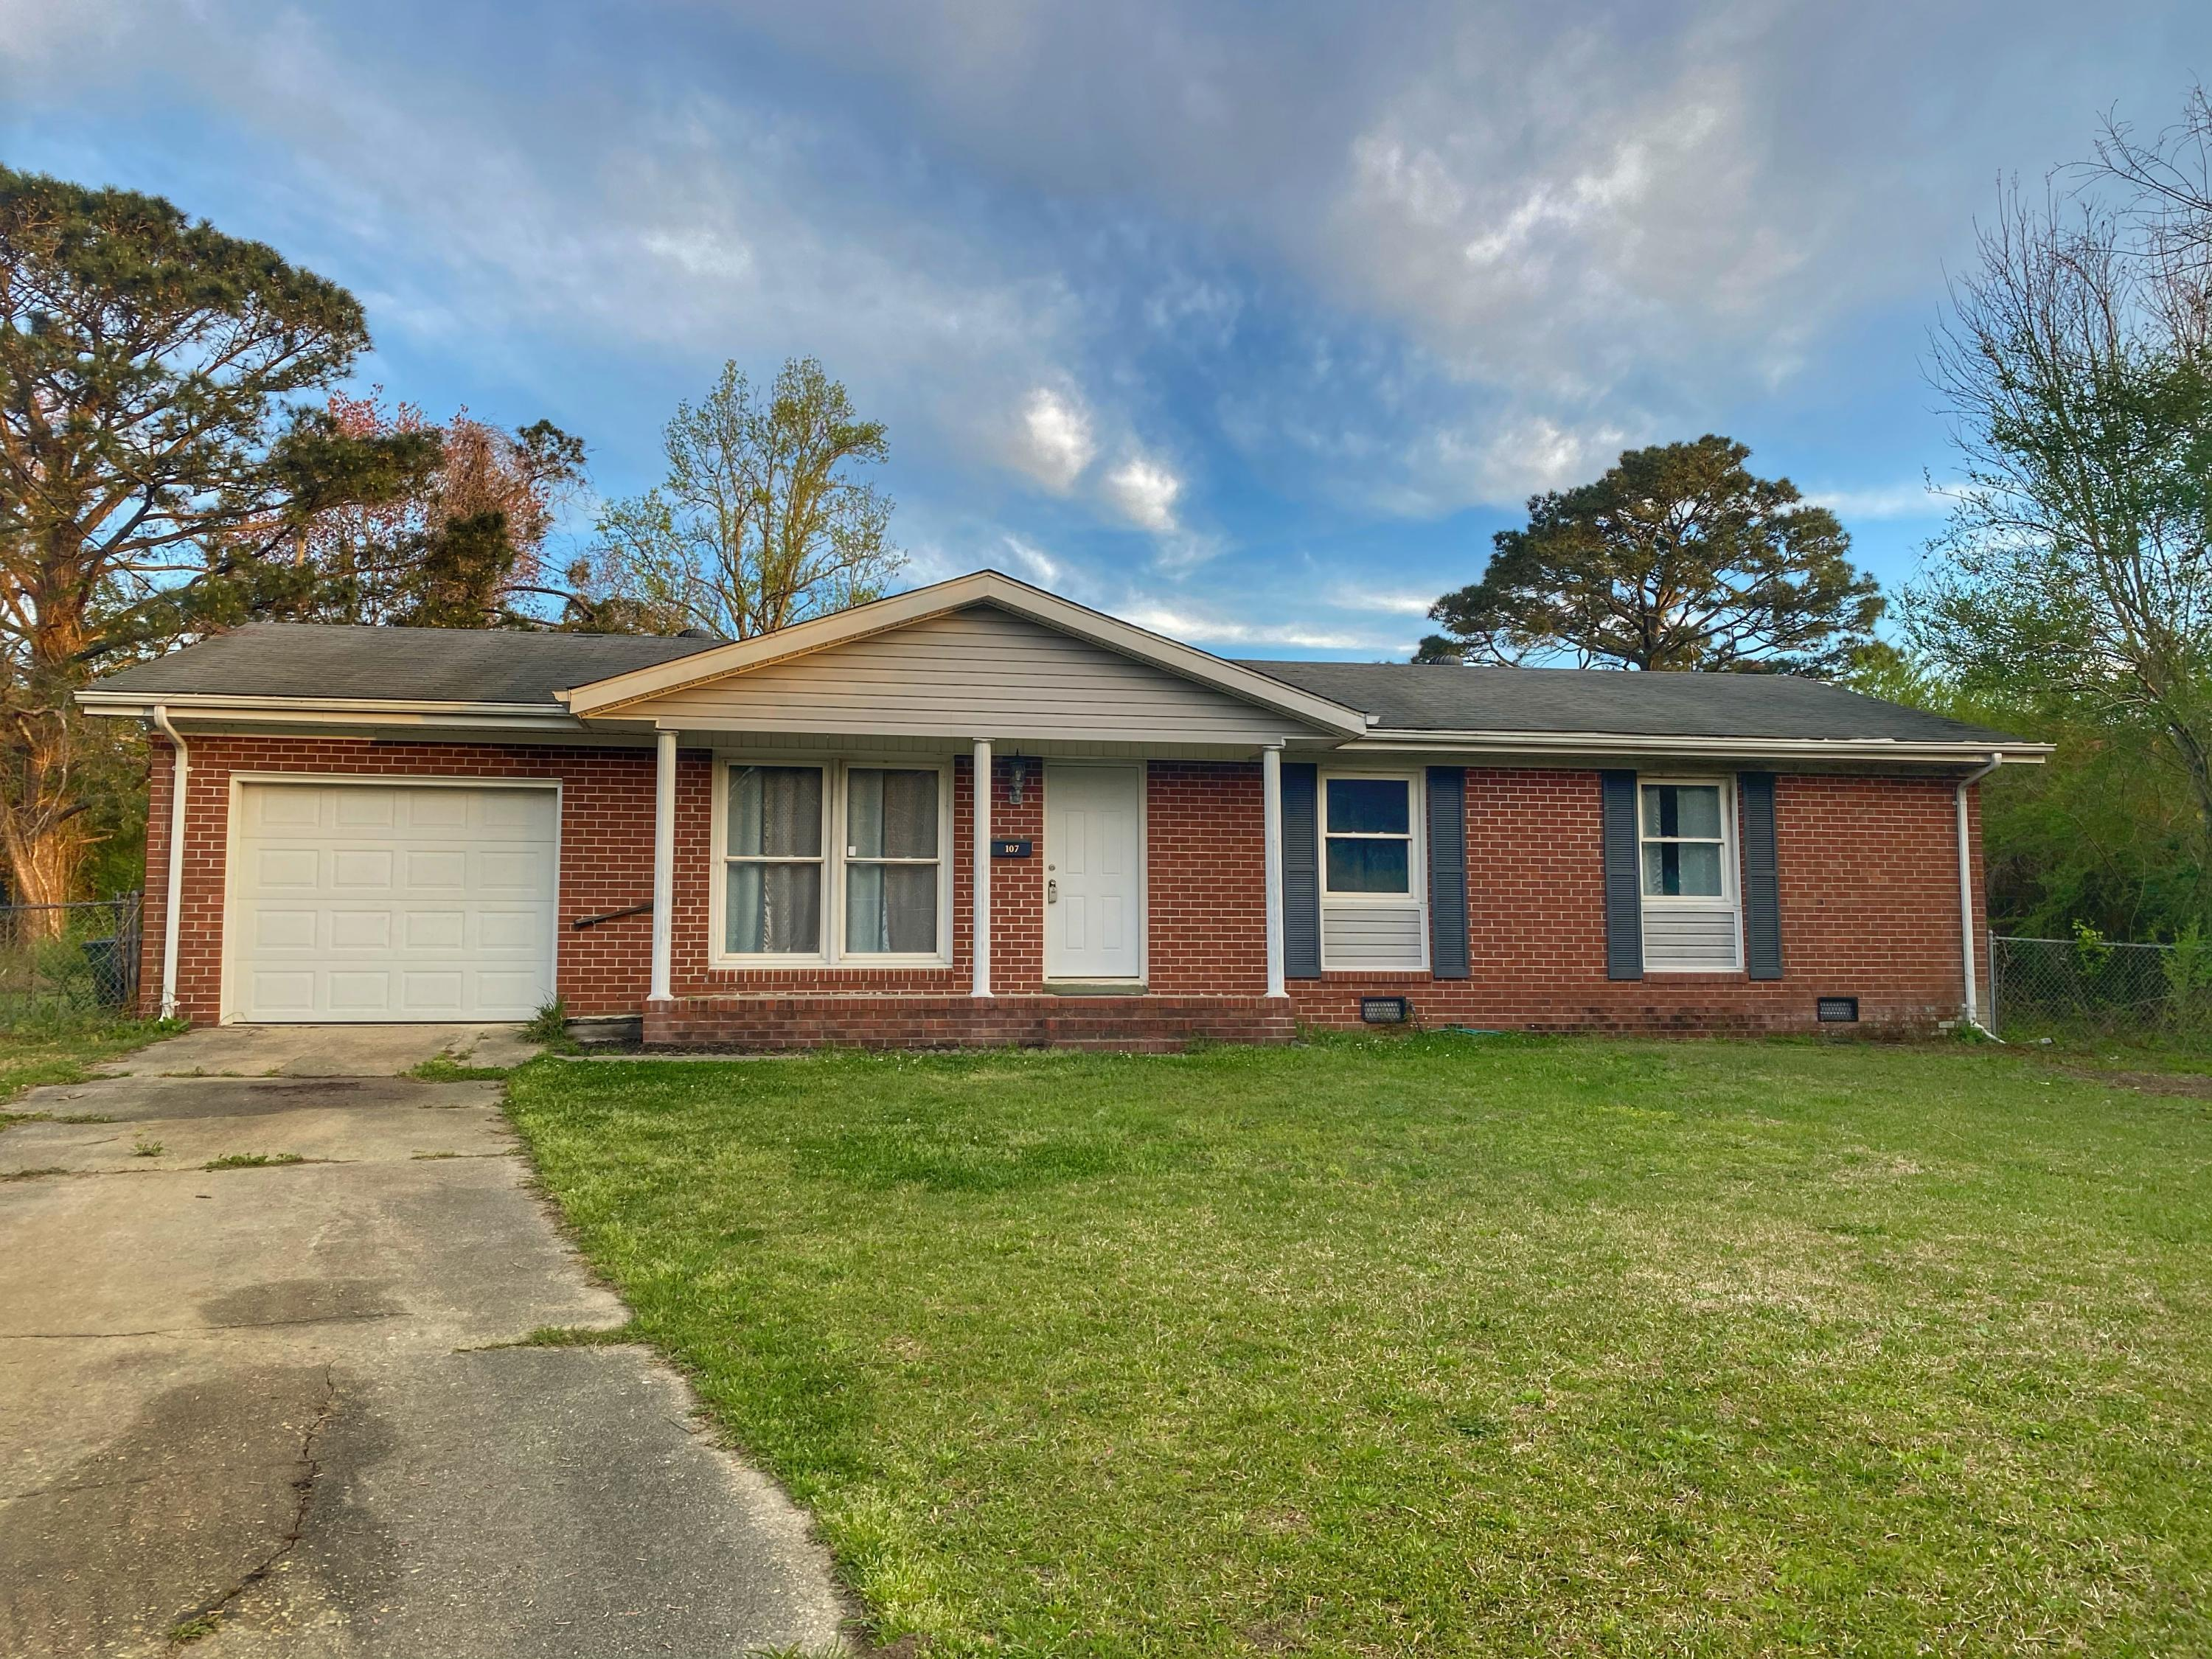 You don't want to miss an opportunity like this one! This adorable brick ranch boasts 3 bedrooms, 2 baths, and best of all, no HOA. Conventionally located in the heart of Jacksonville, this property is only minutes away from Camp Lejeune, MCAS New River, and local beaches. Call today for your showing!